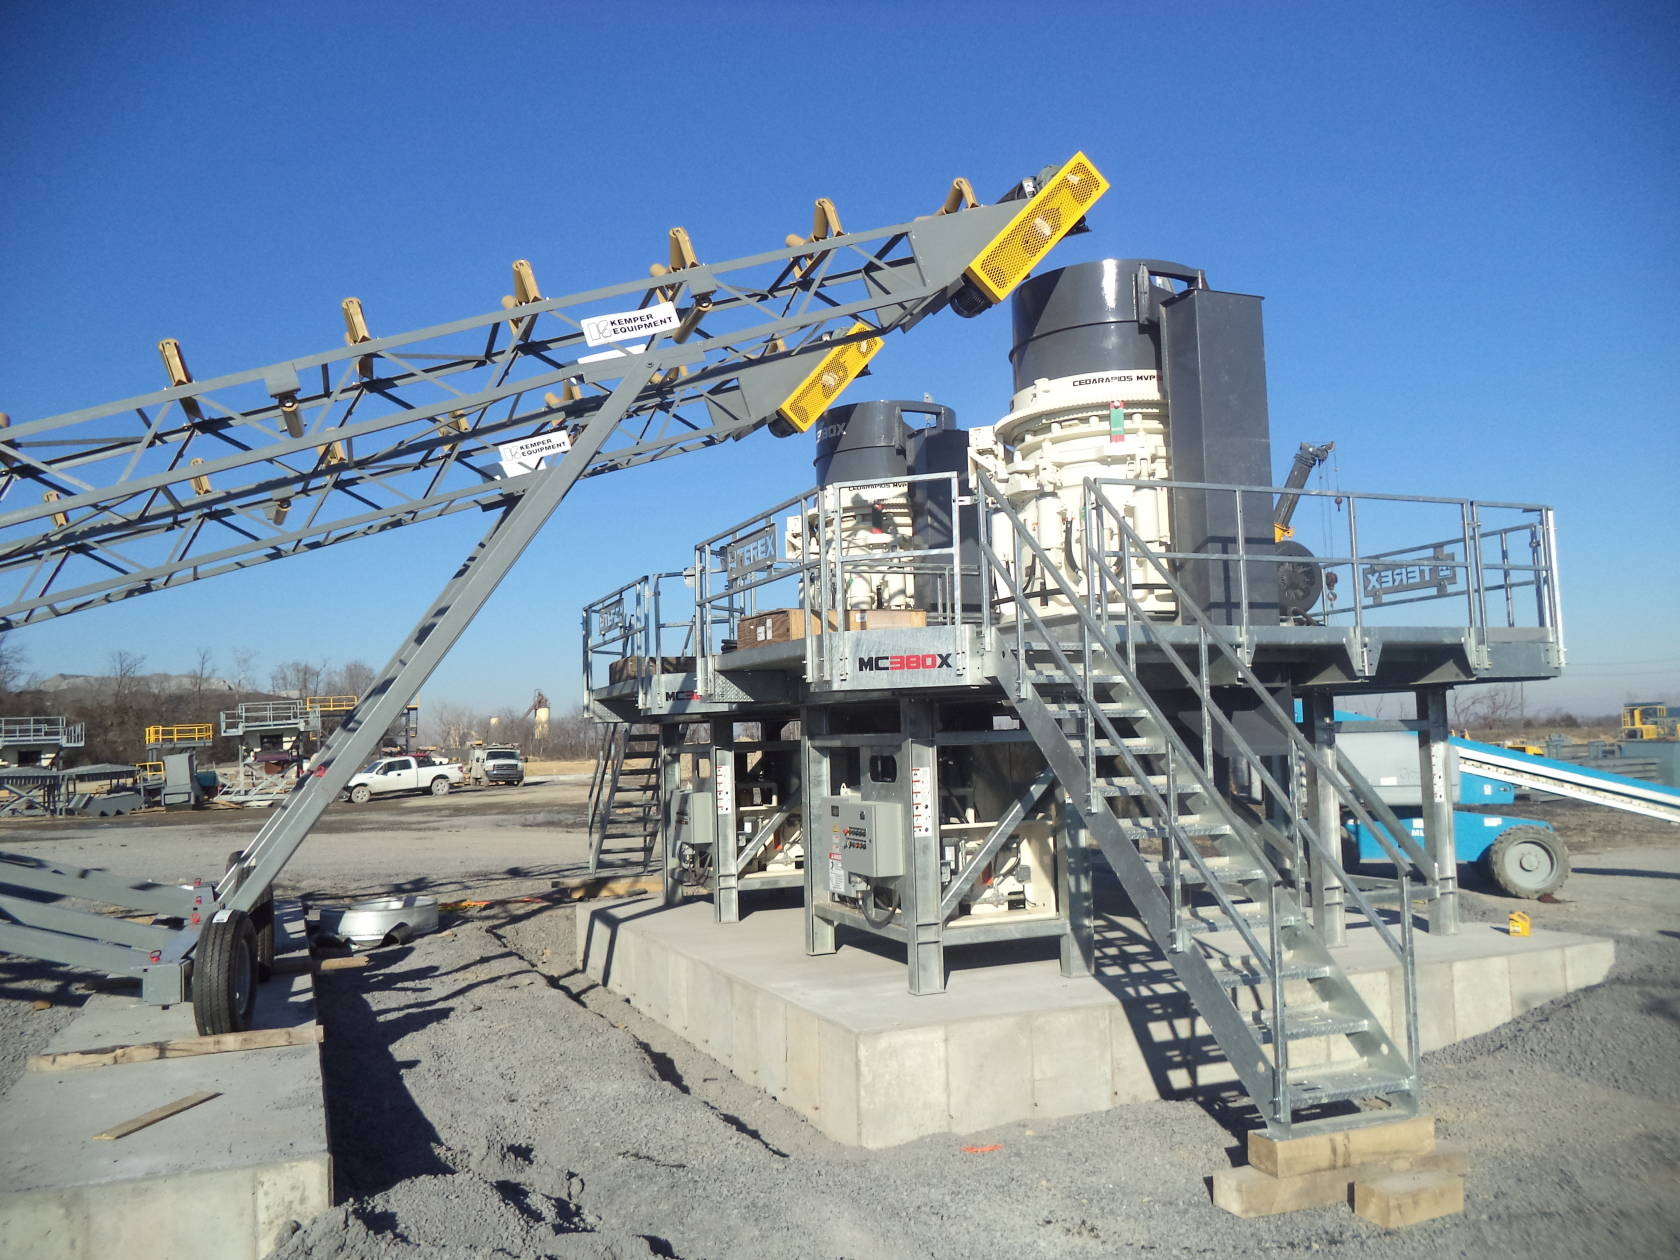 Terex 174 Minerals Processing Systems Launch New Modular